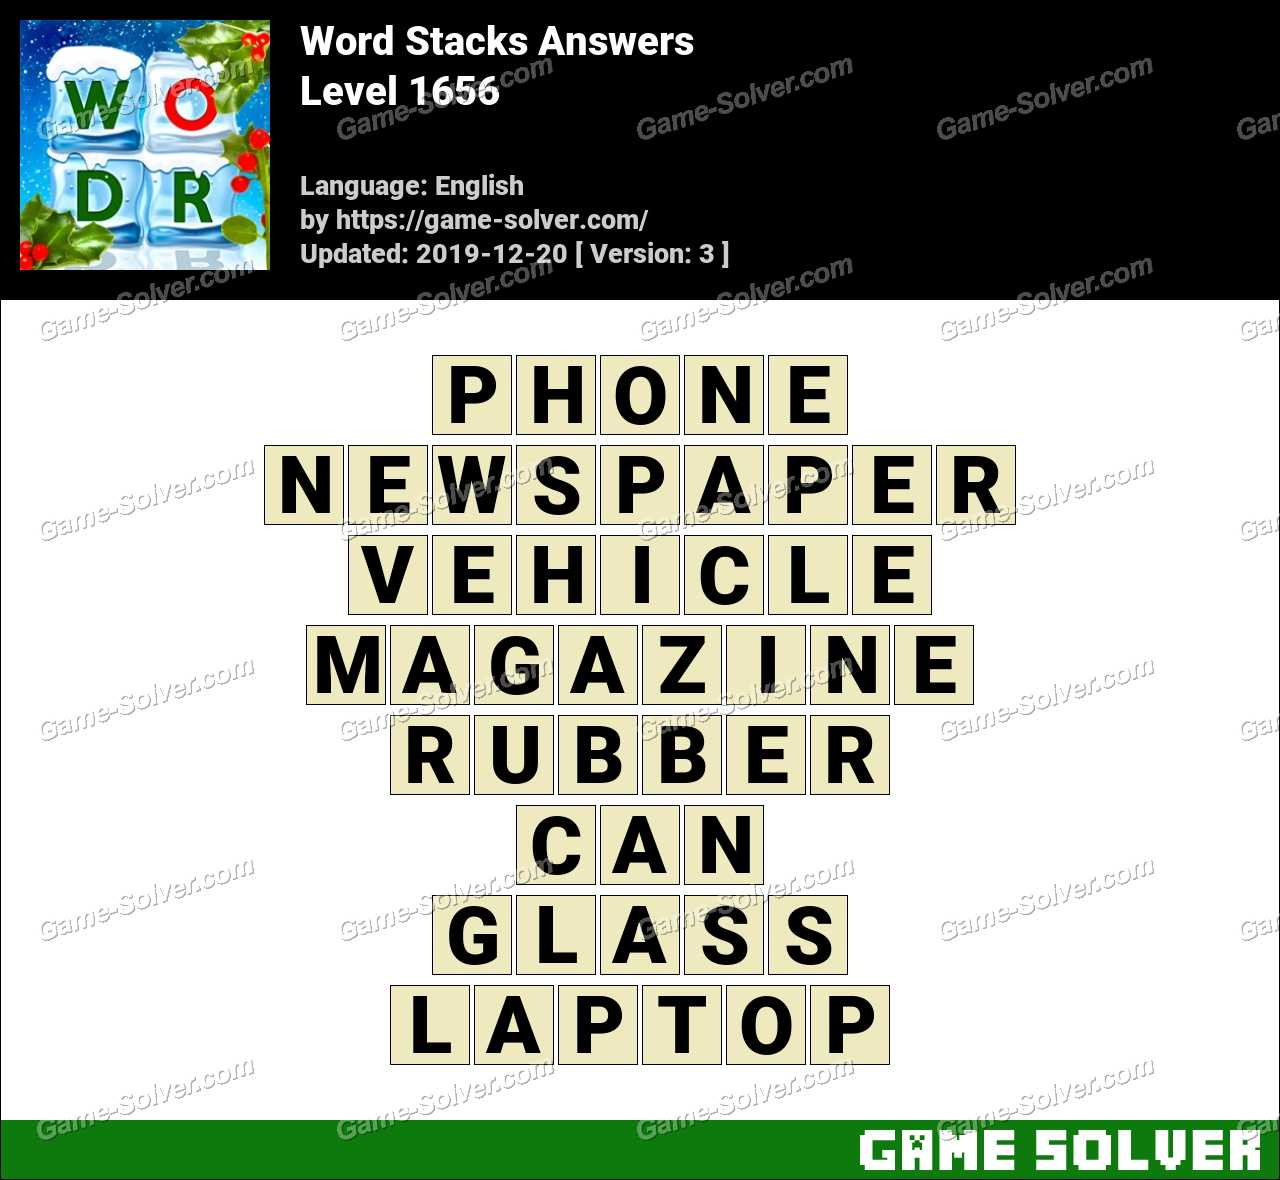 Word Stacks Level 1656 Answers